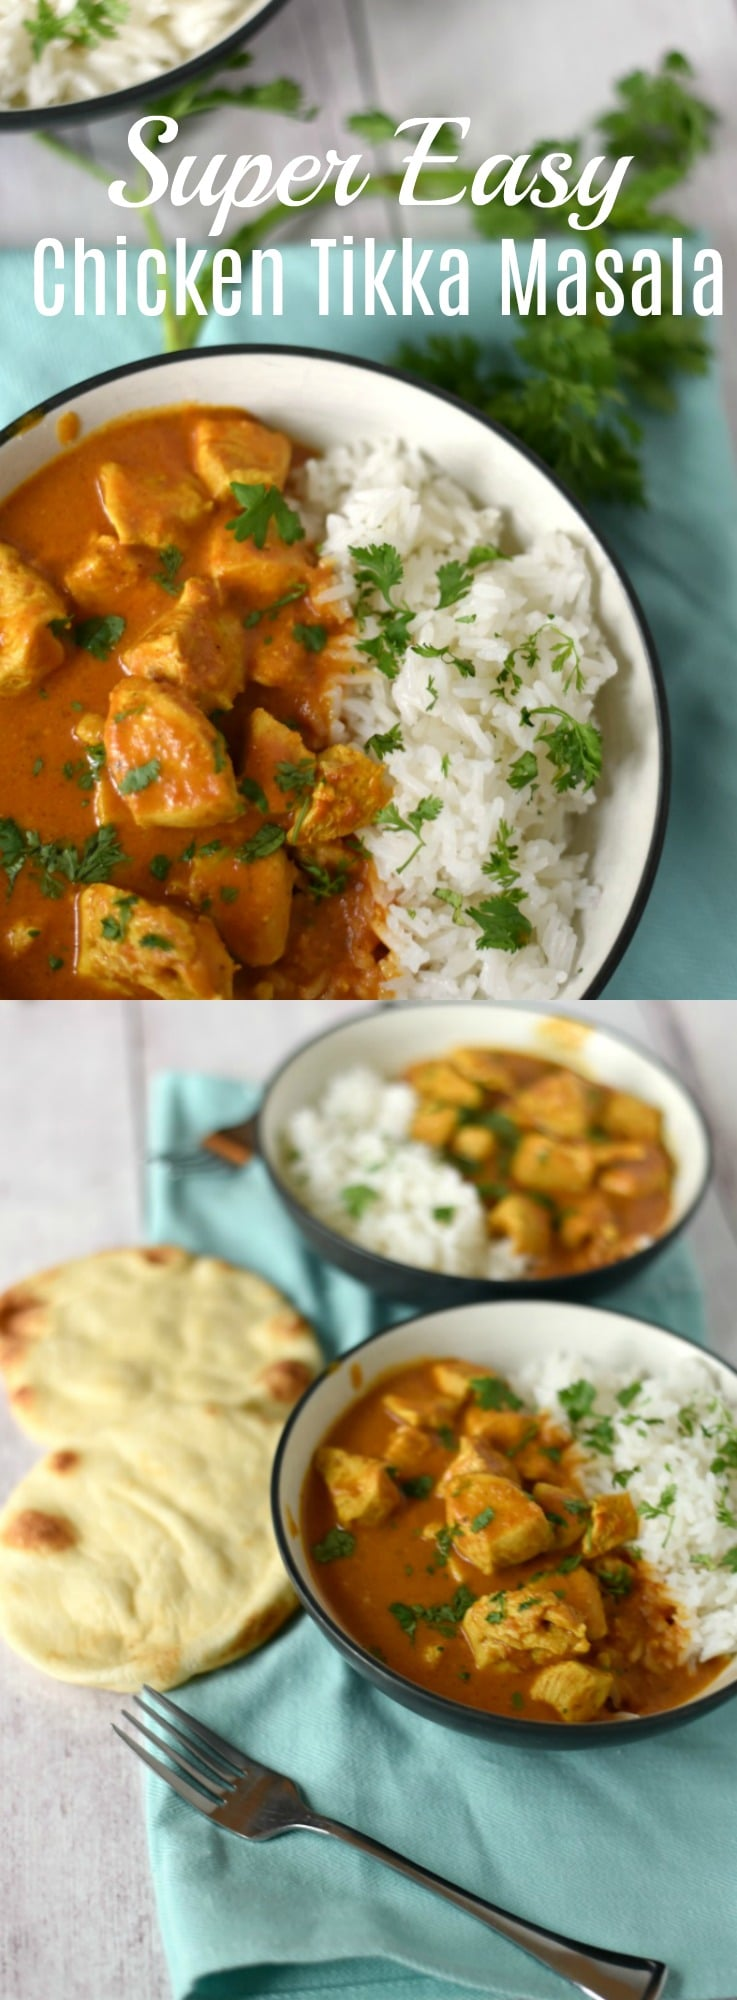 This easy Chicken Tikka Masala recipe is ready in about 20 minutes thanks to the pre-made masala paste that turns this into a pantry-staple, quick make meal your family will love! 20 Minute Meal, Freezer Meal (kind of), Indian recipe, Easy Recipe,